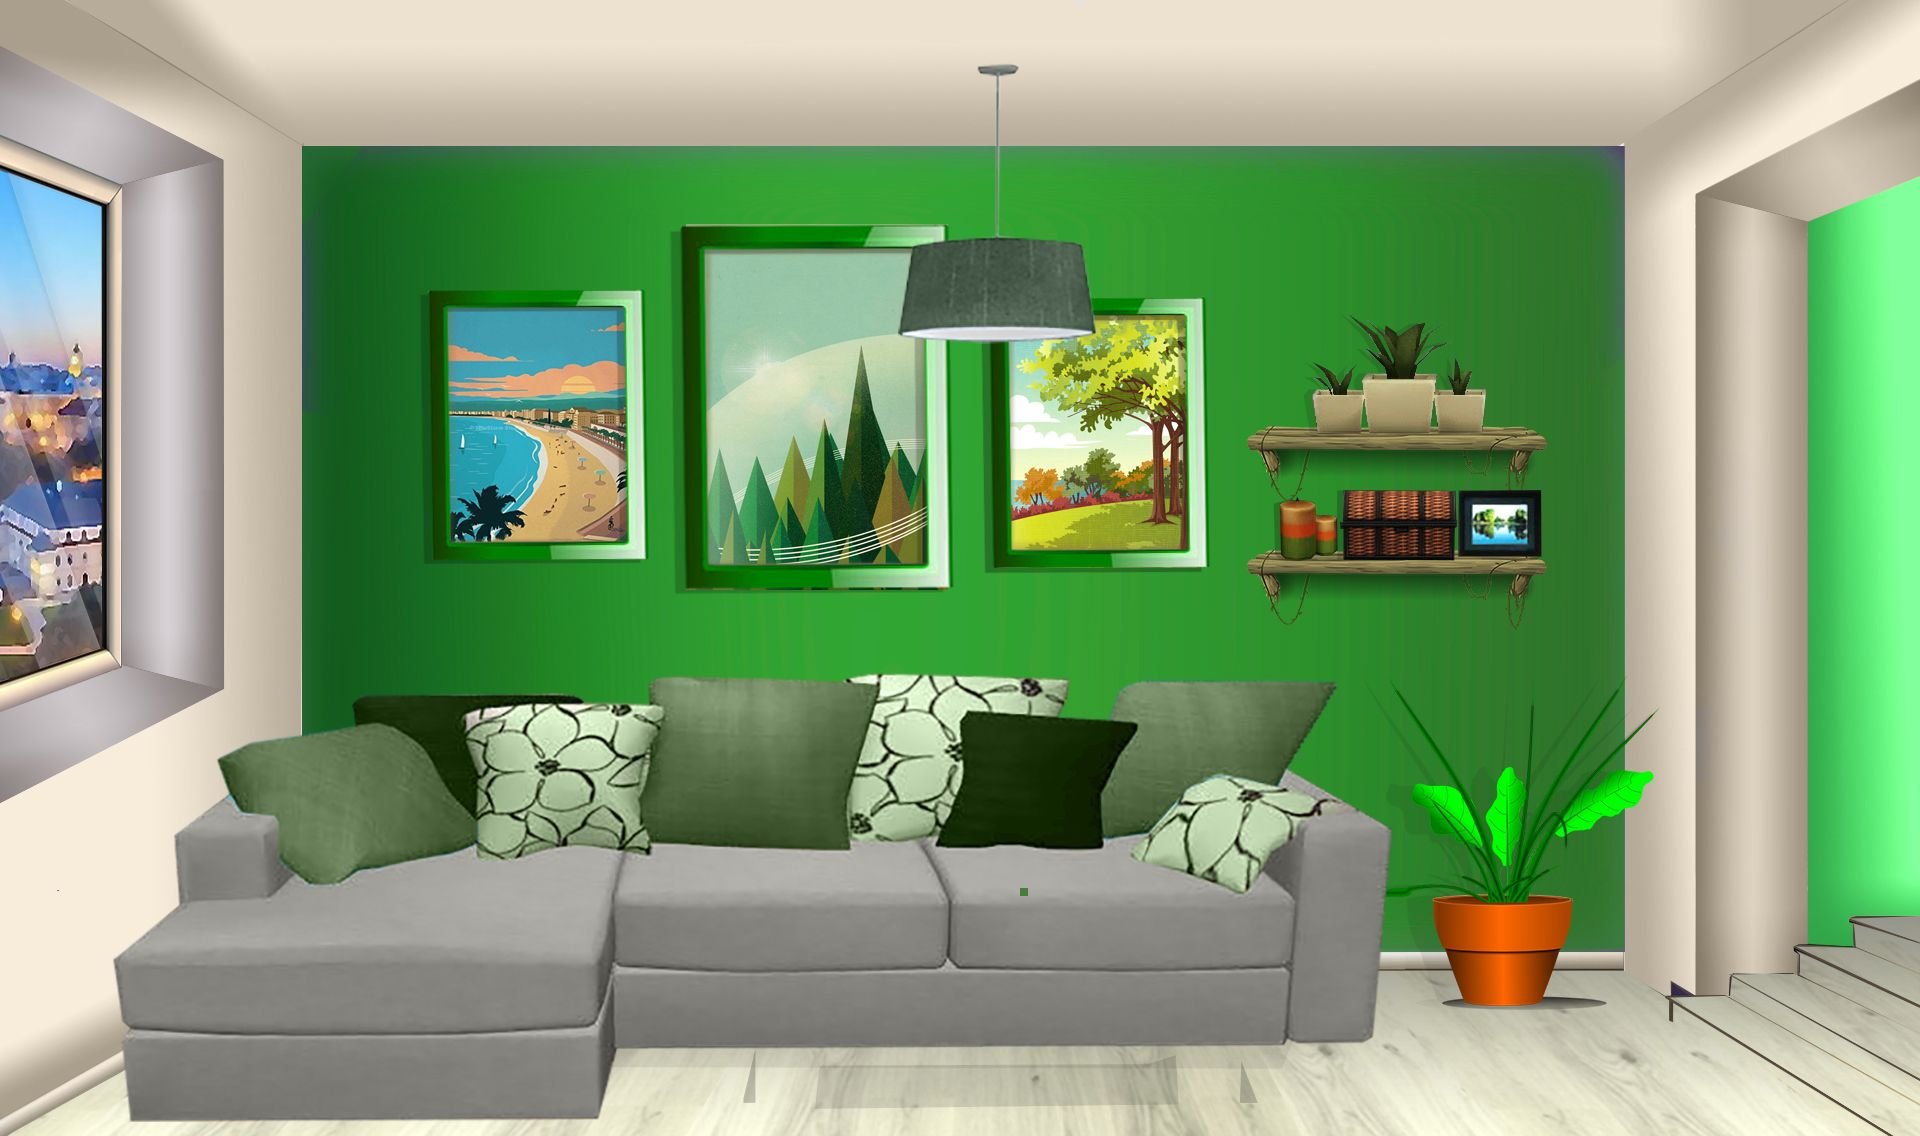 Int Apartment Green Living Room Day Living Room Anime Living Room Background Living Room Anime Background Living room background png